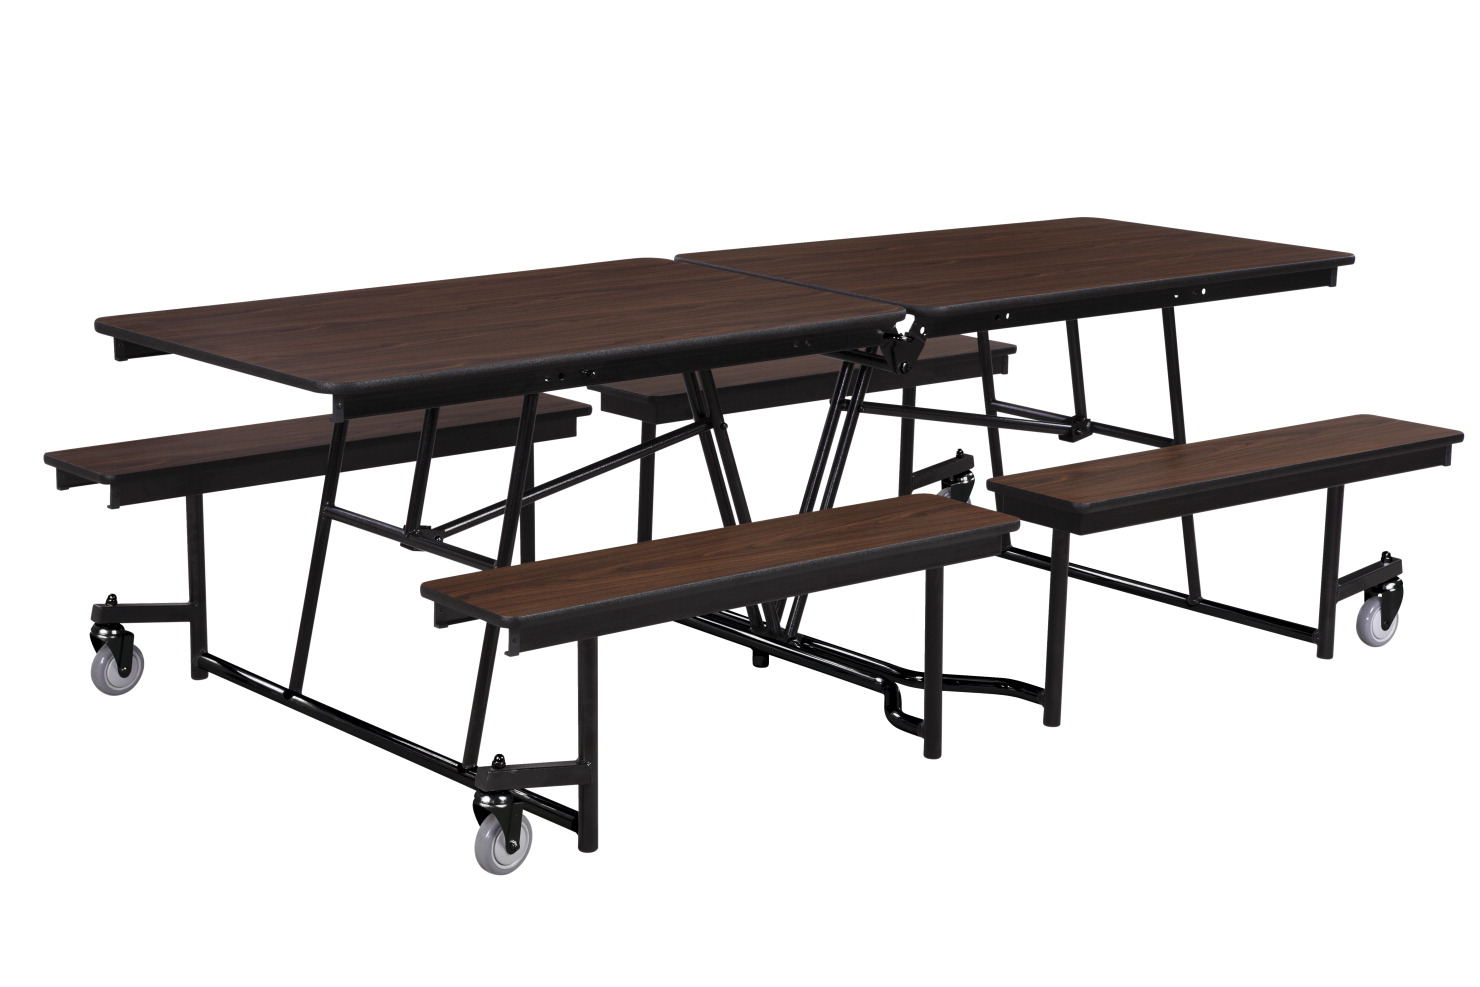 Classroom Select Rectangle Mobile Cafeteria Table with Fixed Benches and LockEdge, 12 ft L x 29 in H, MDF Core High Pressure Laminate Top, Black Powder Coated Frame